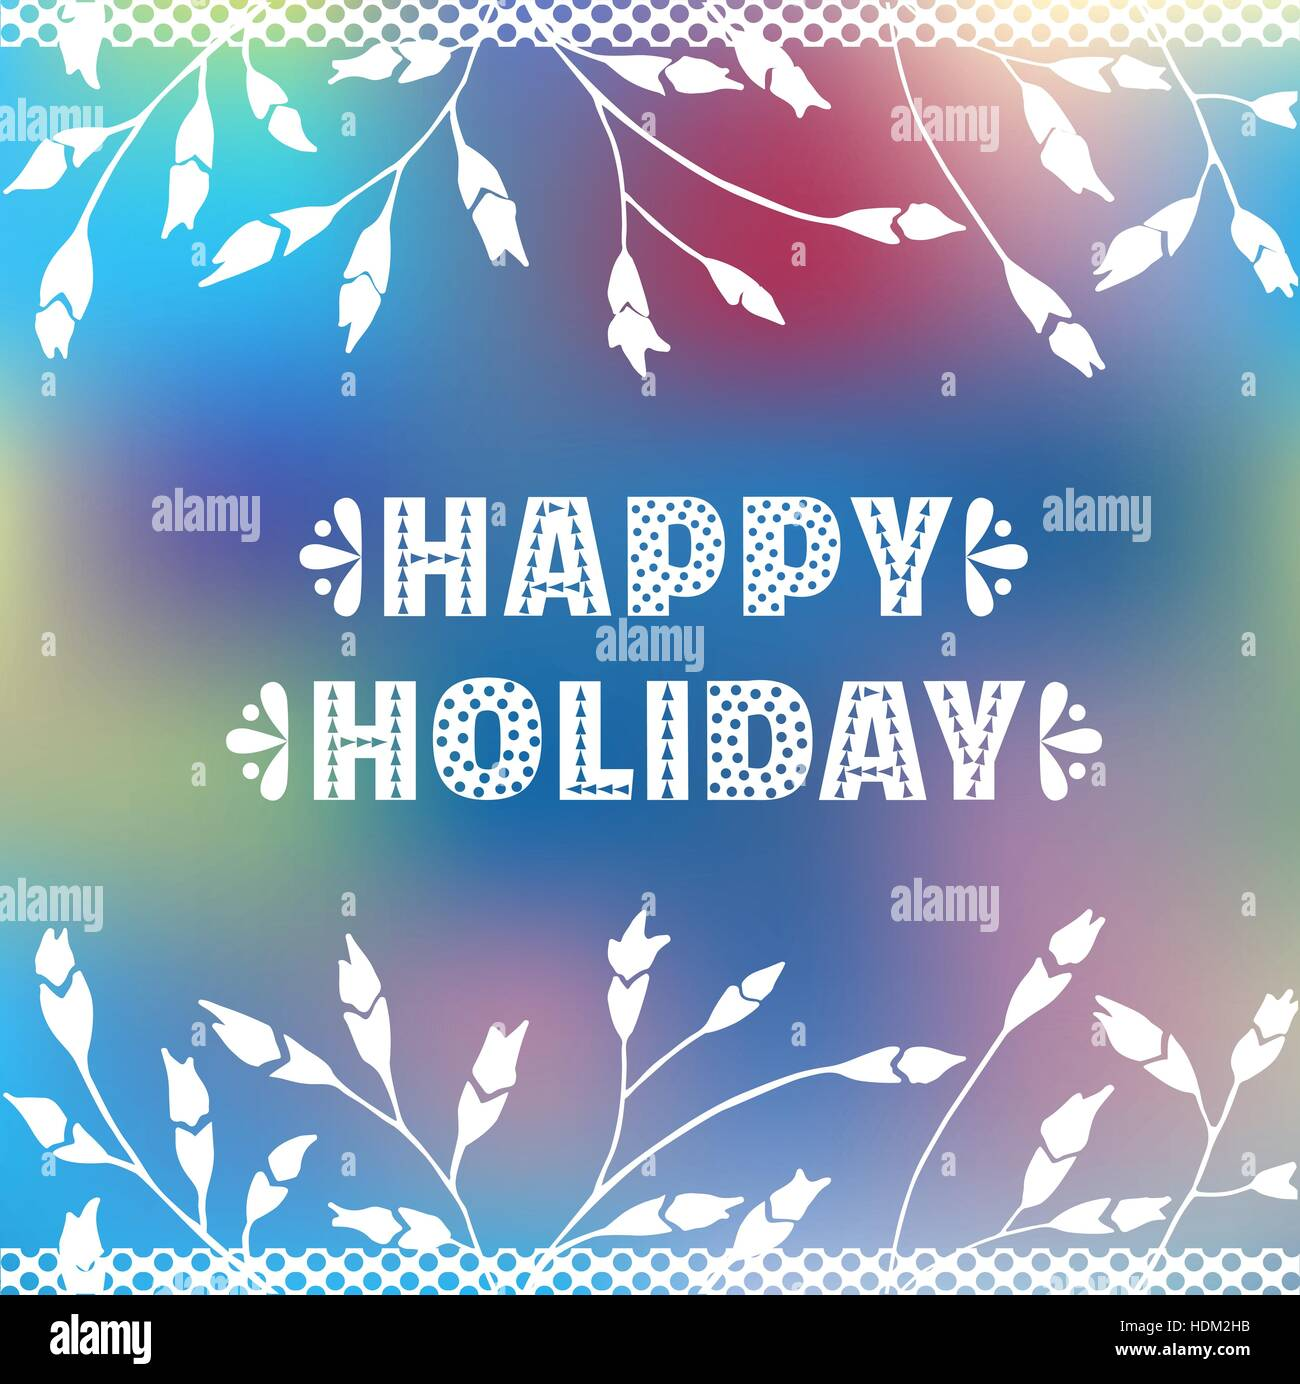 Happy Holiday Cute Fancy White Letters Ornate Border Background